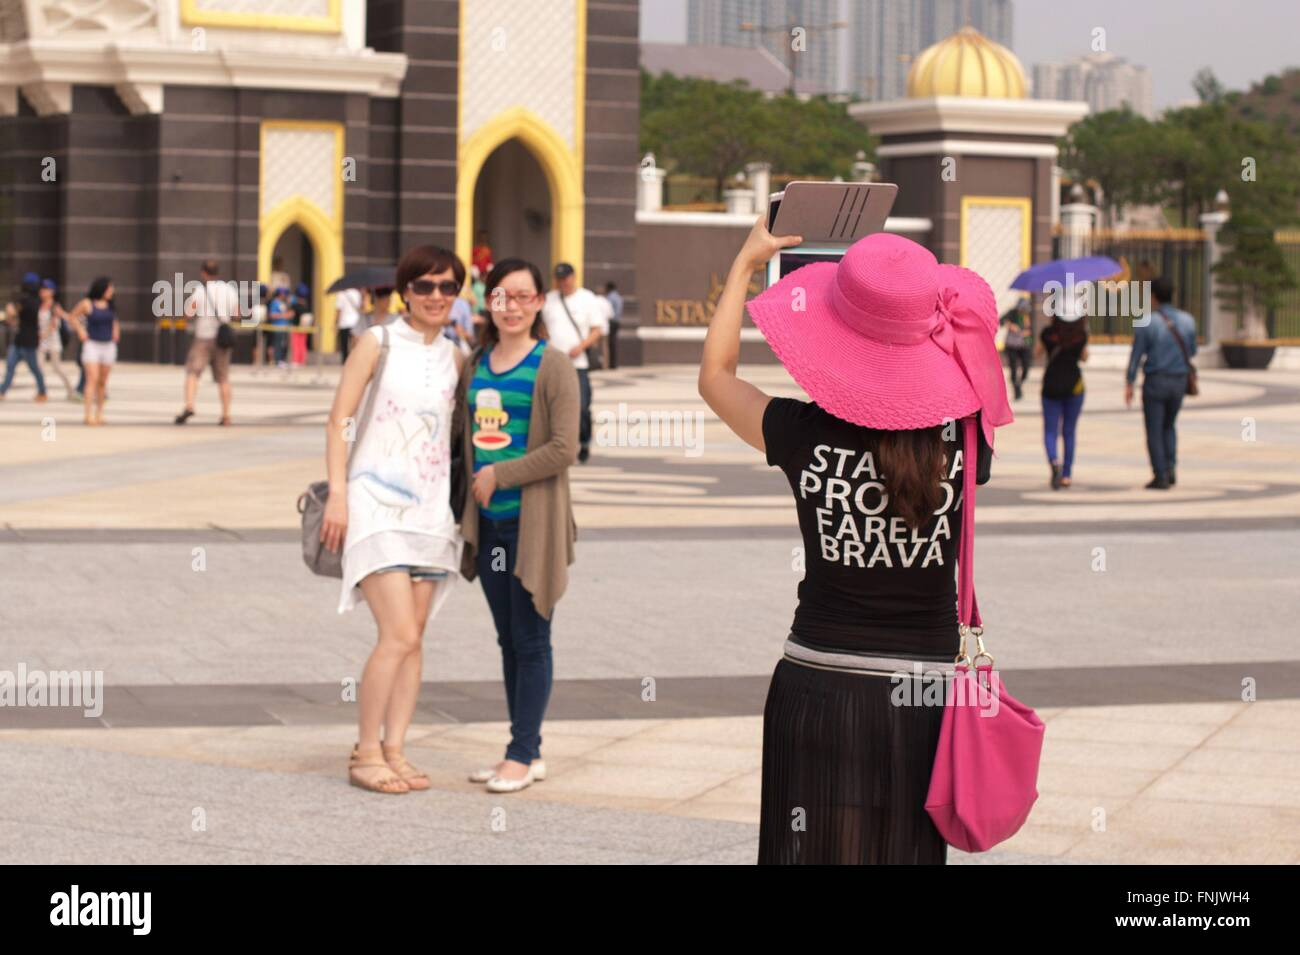 Tourists are taking pictures in front of the National Palace in Kuala Lumpur, Malaysia, on 19 October 2014. Photo: - Stock Image